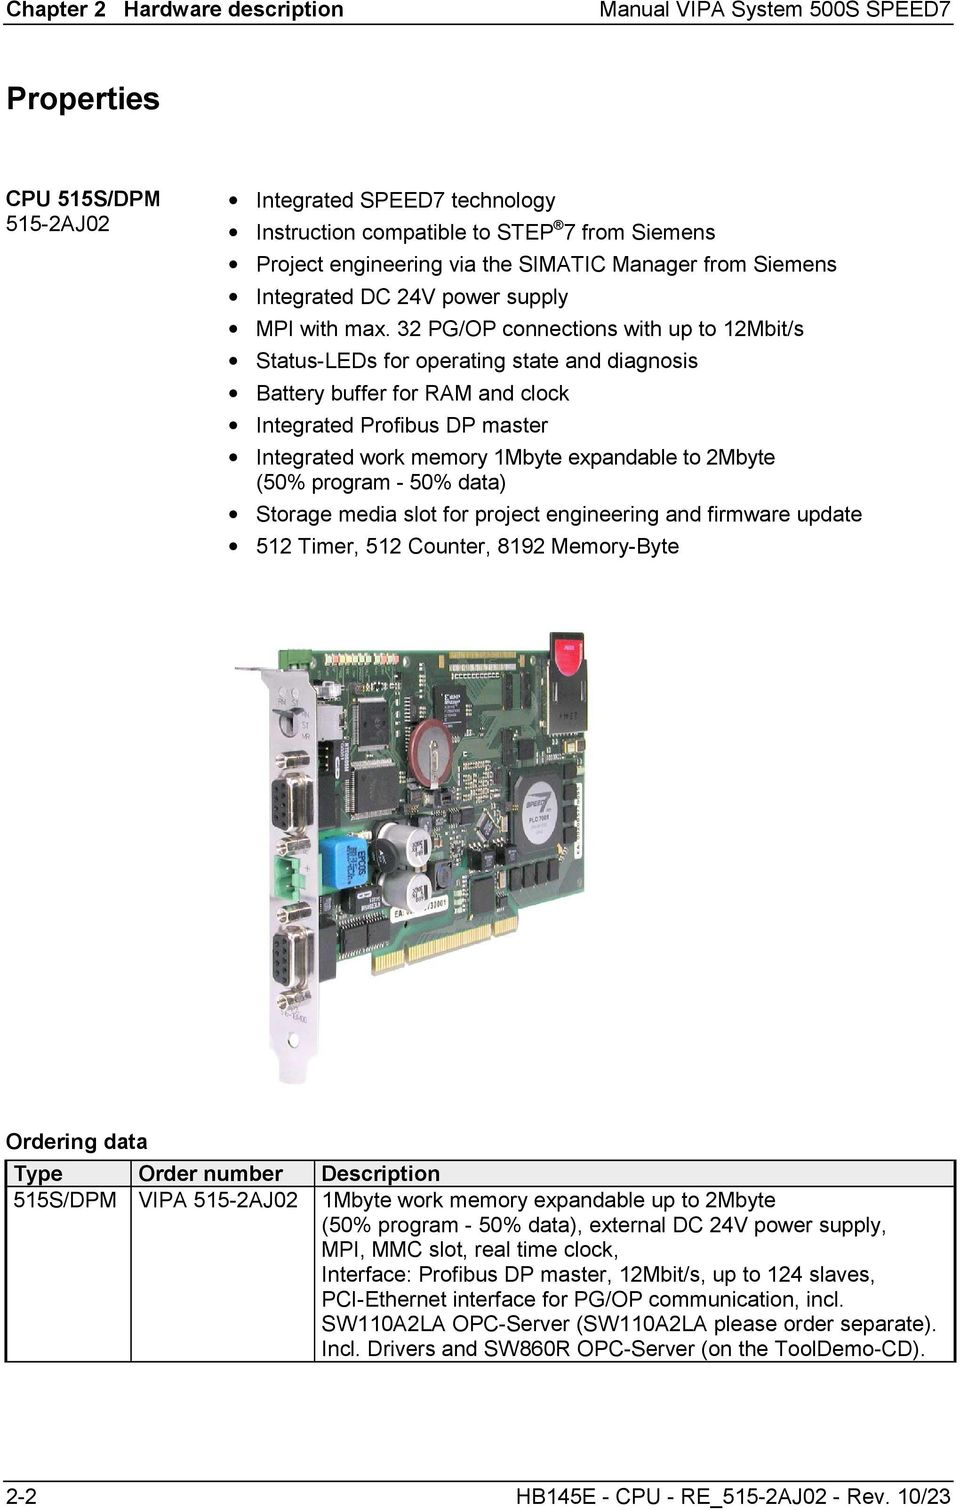 32 PG/OP connections with up to 12Mbit/s Status-LEDs for operating state and diagnosis Battery buffer for RAM and clock Integrated Profibus DP master Integrated work memory 1Mbyte expandable to